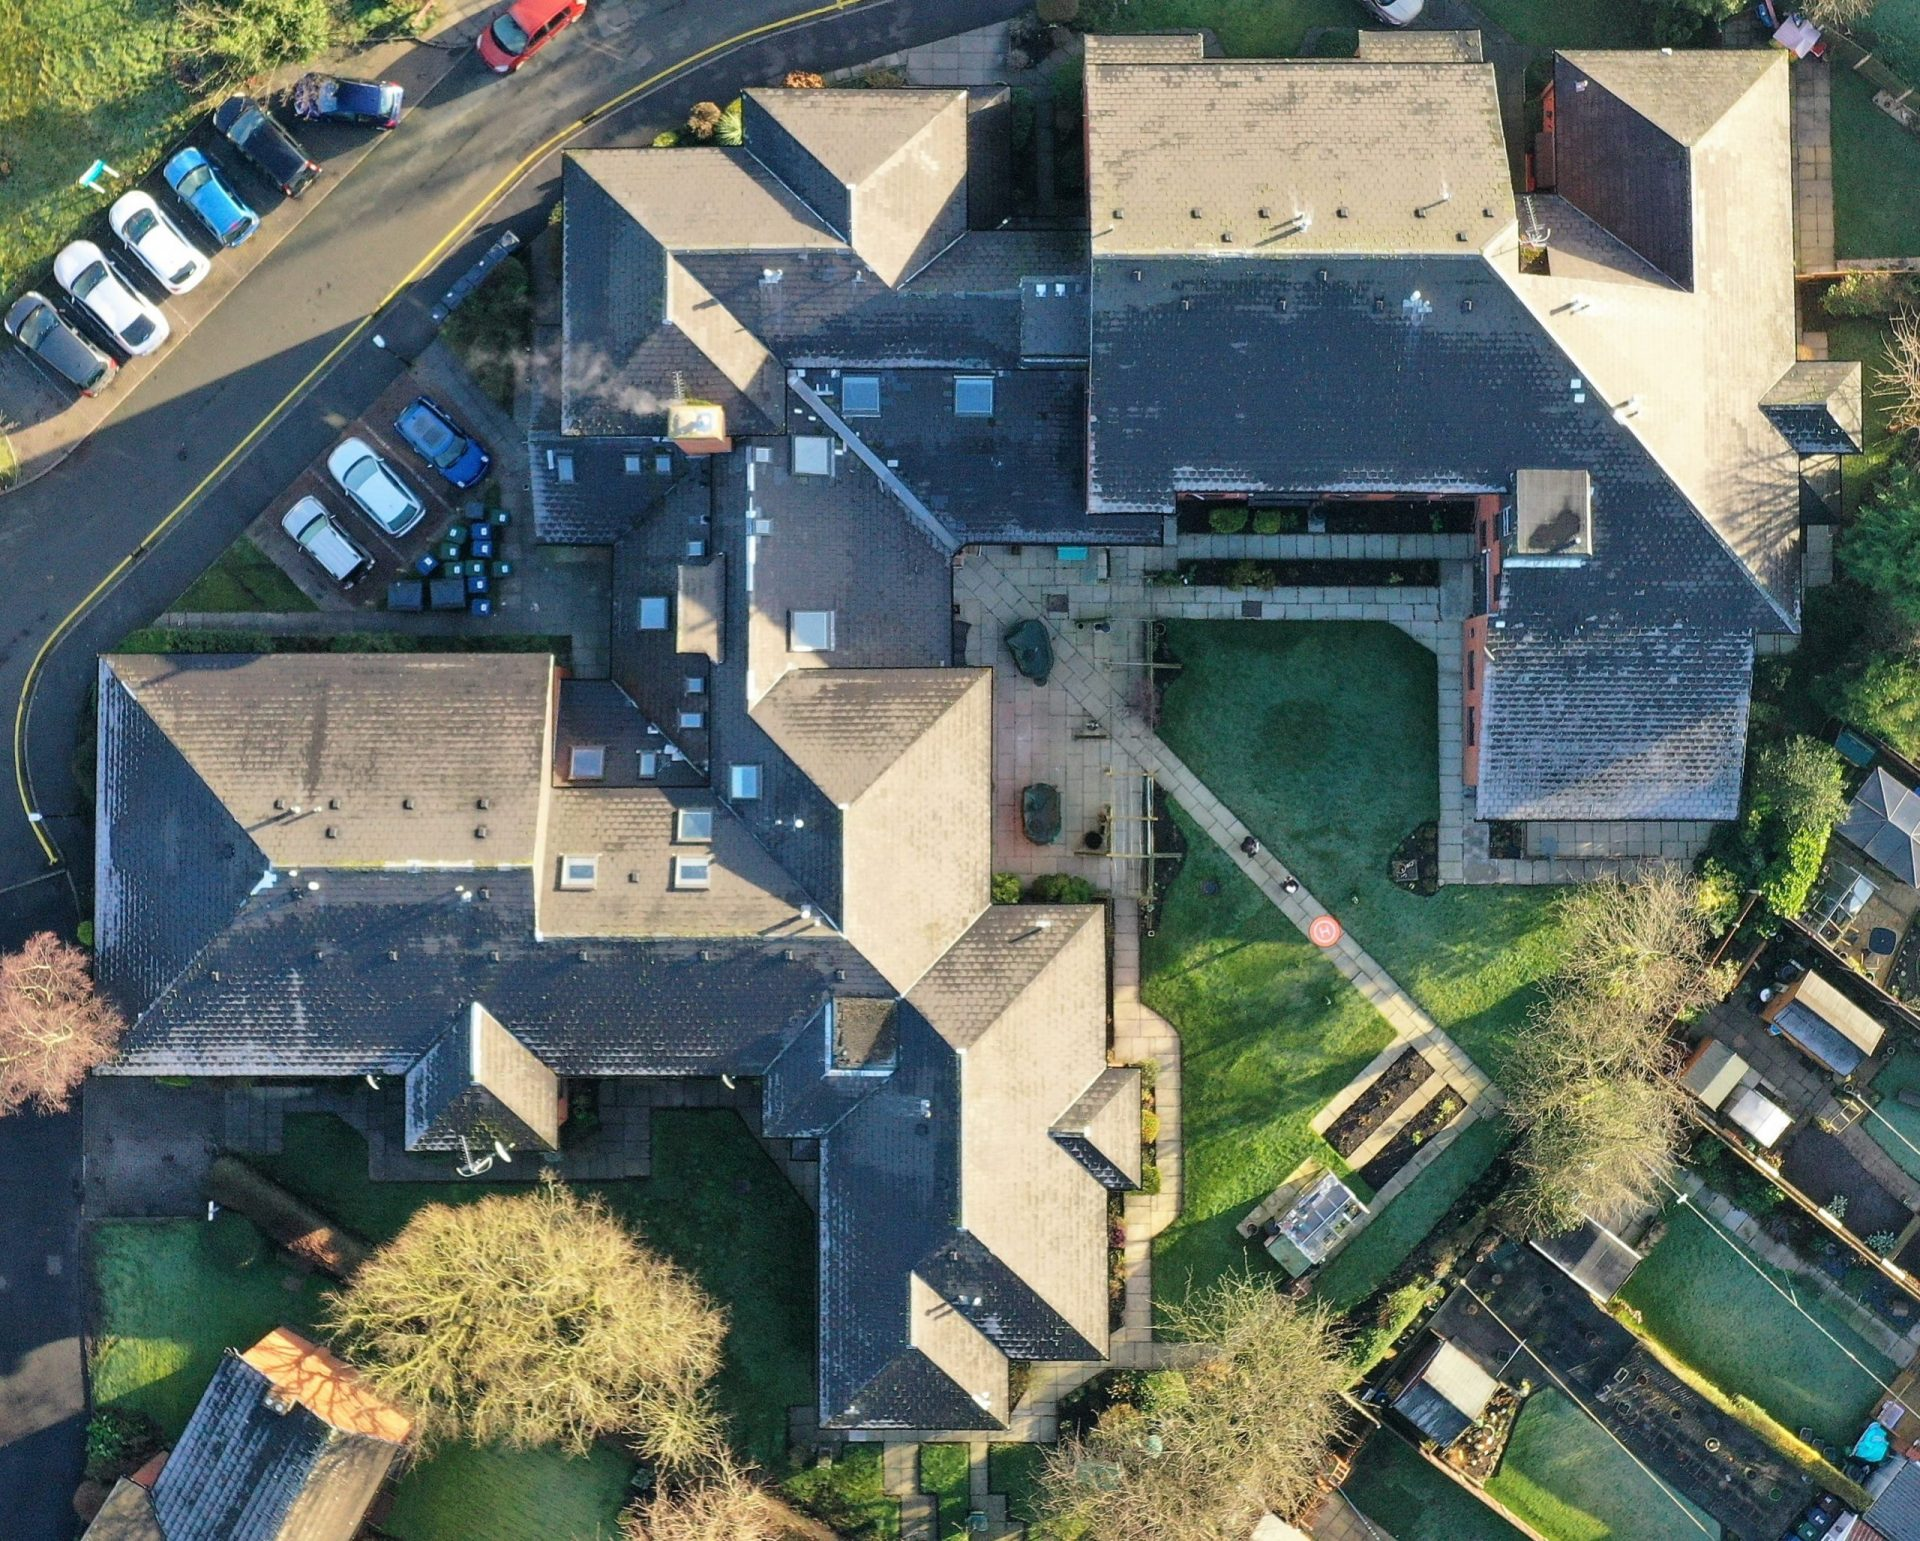 Aerial Roof Condition Survey carried out by drones